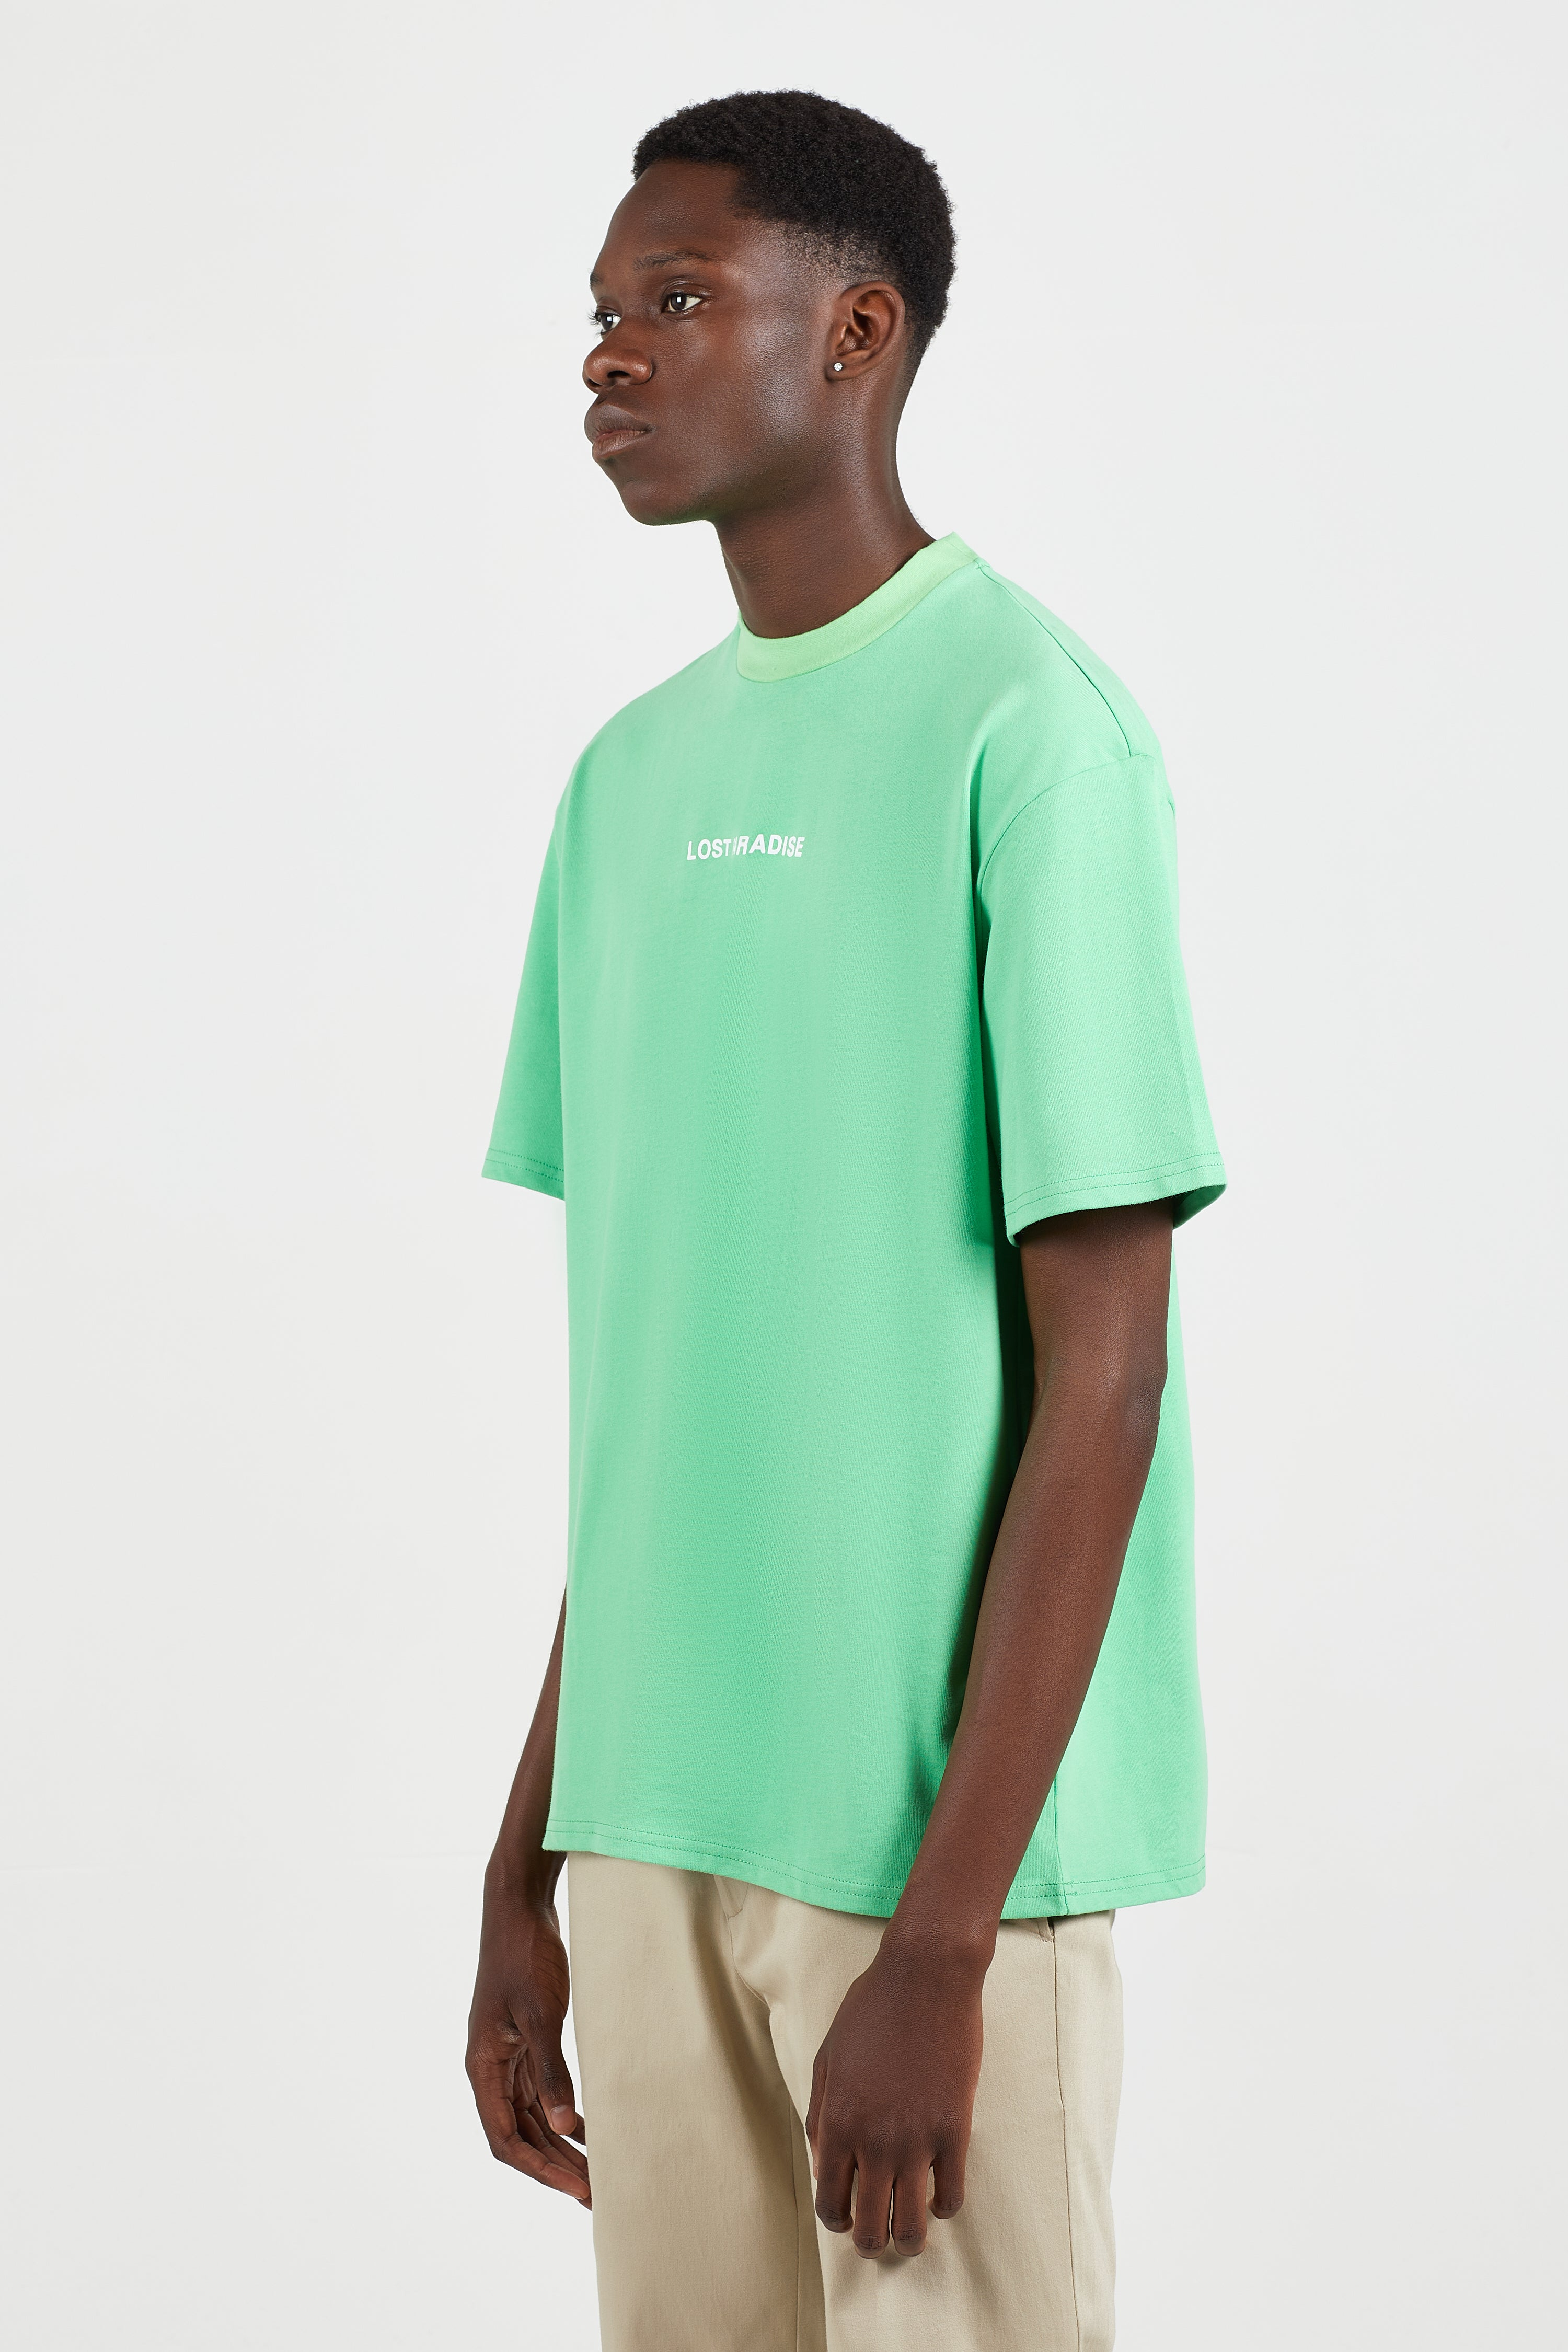 Classic Mint Green T-Shirt